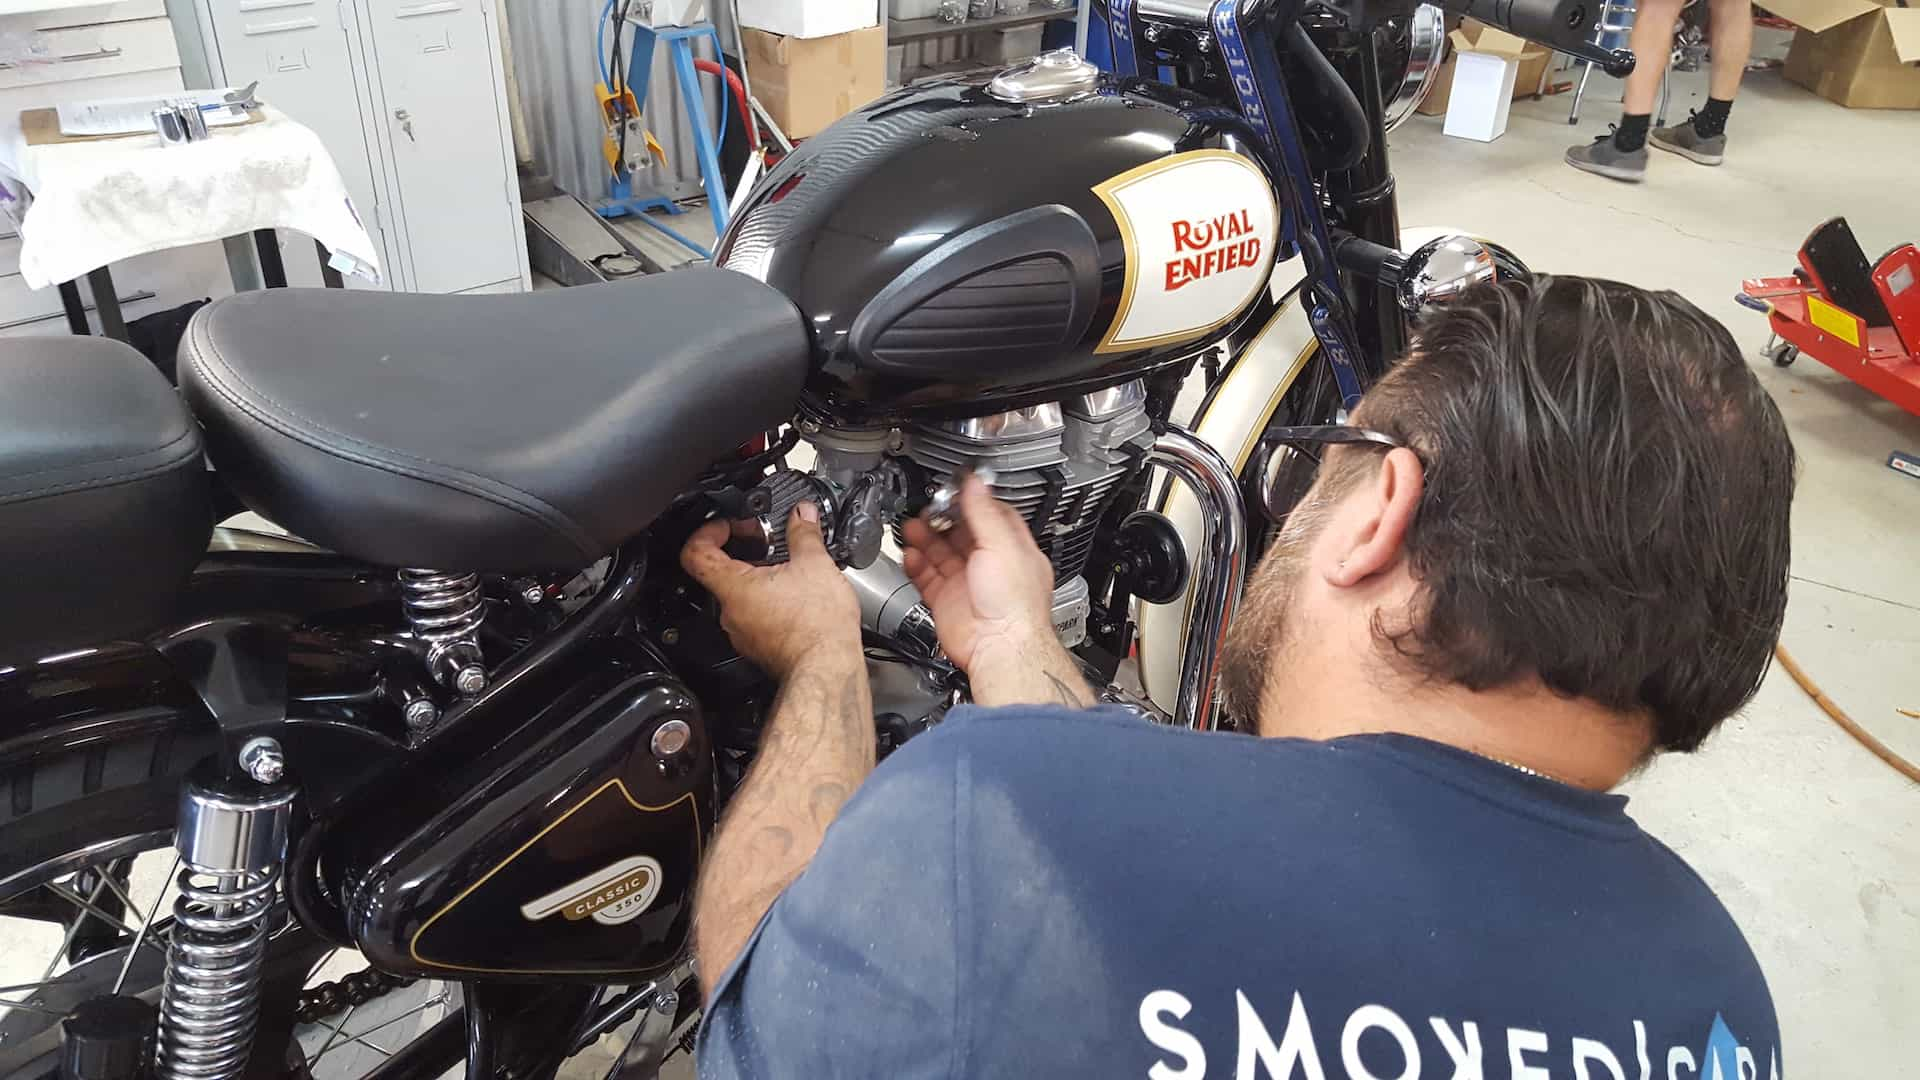 Smoked Garage High Quality Bike Services Brisbane